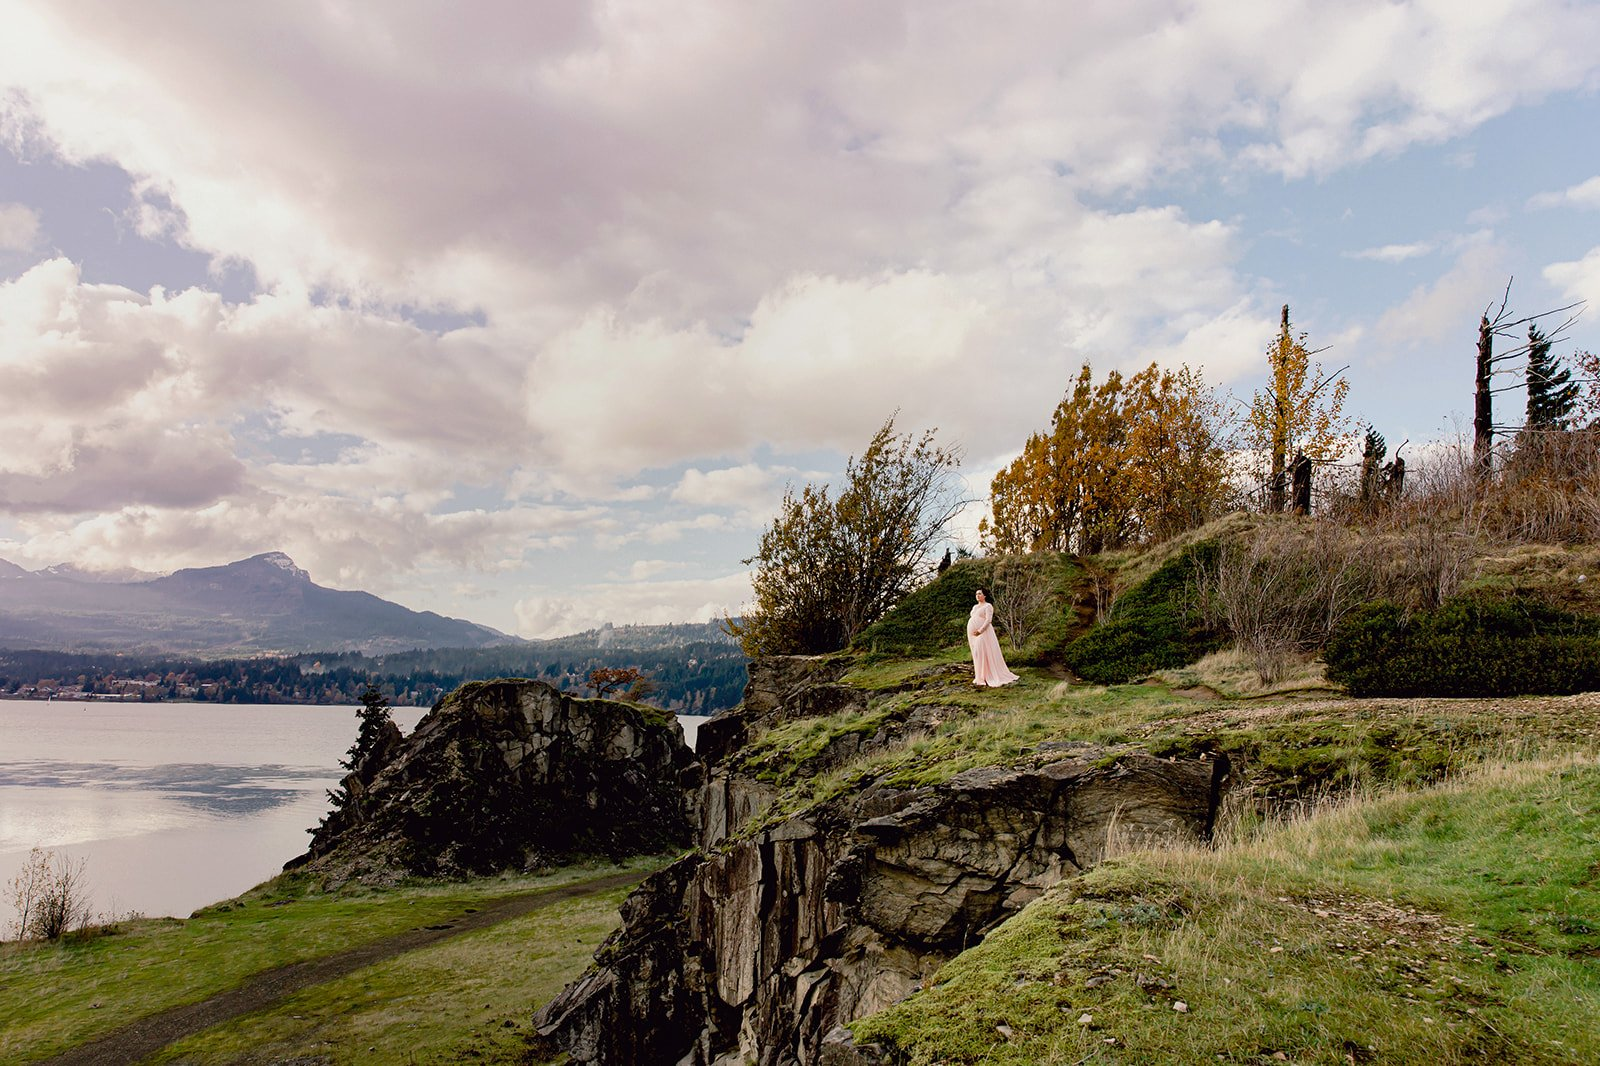 Woman on cliffside at Columbia River Gorge Maternity Photo Session with Oregon Adventure Photographer Annie Helen